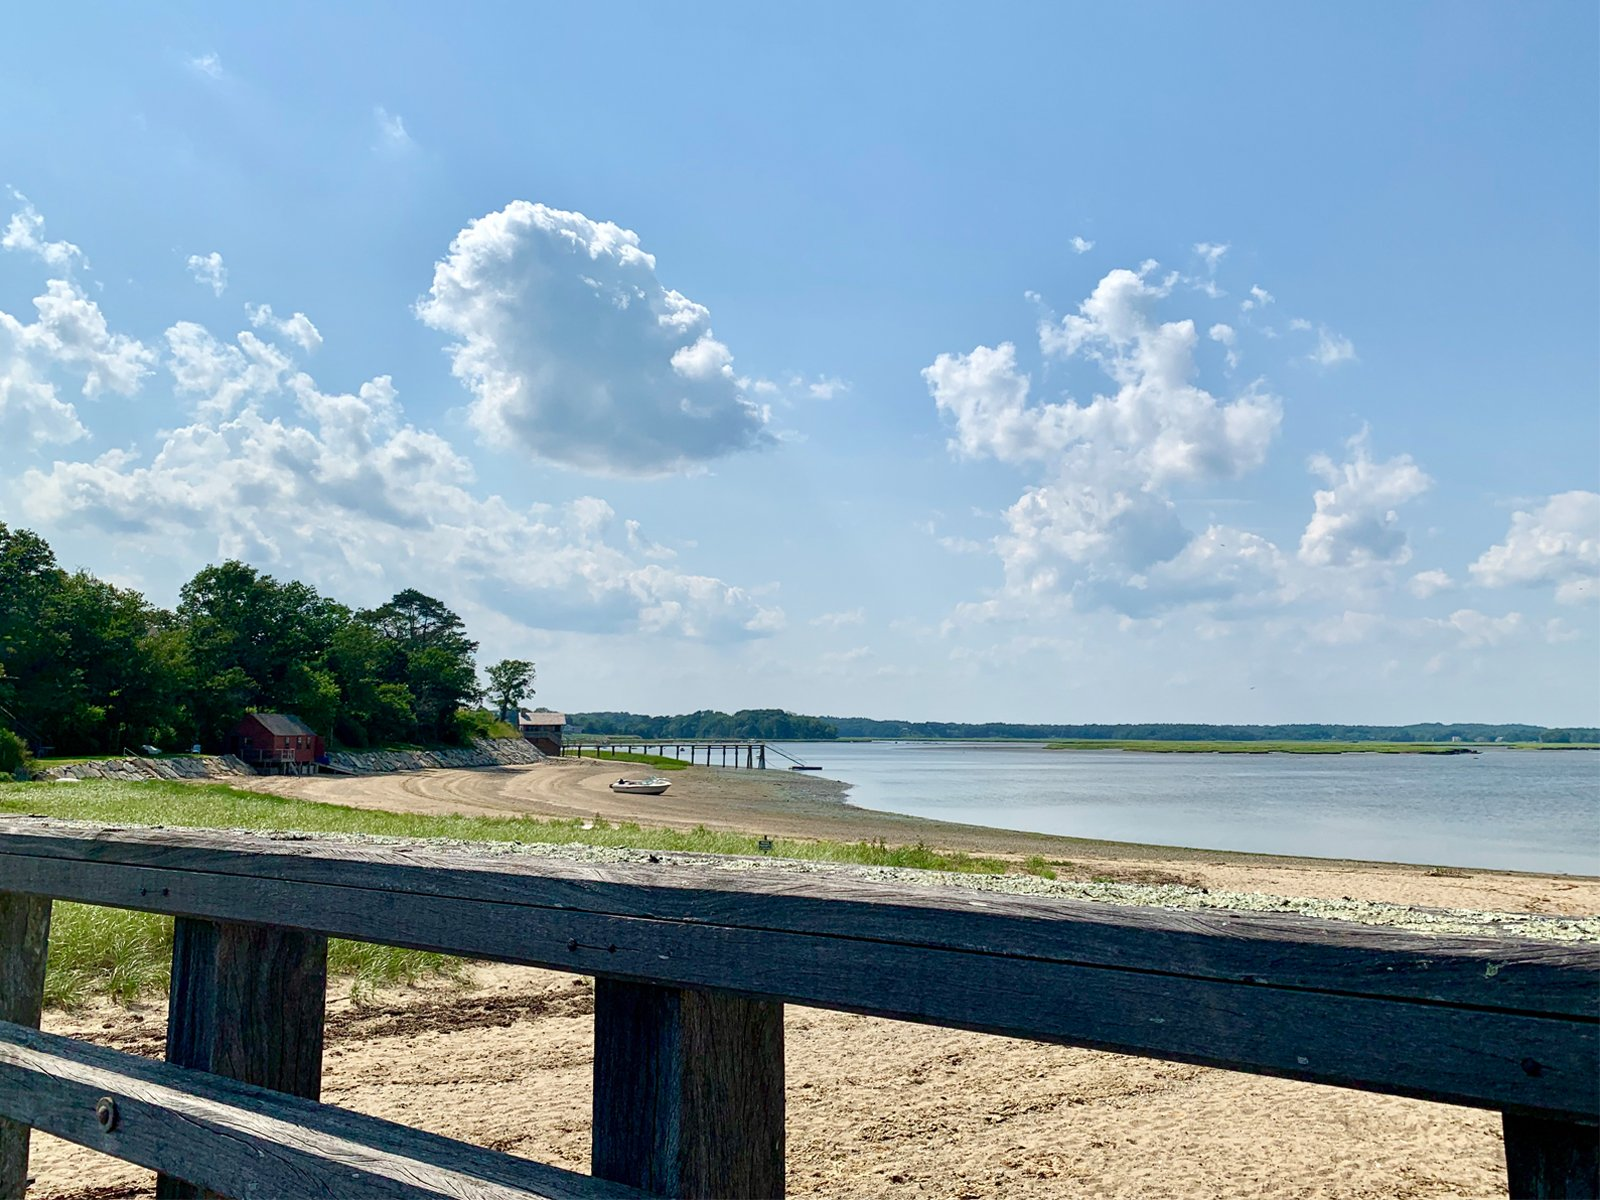 view of the beach from Powder Point Bridge in the summer in Duxbury, MA